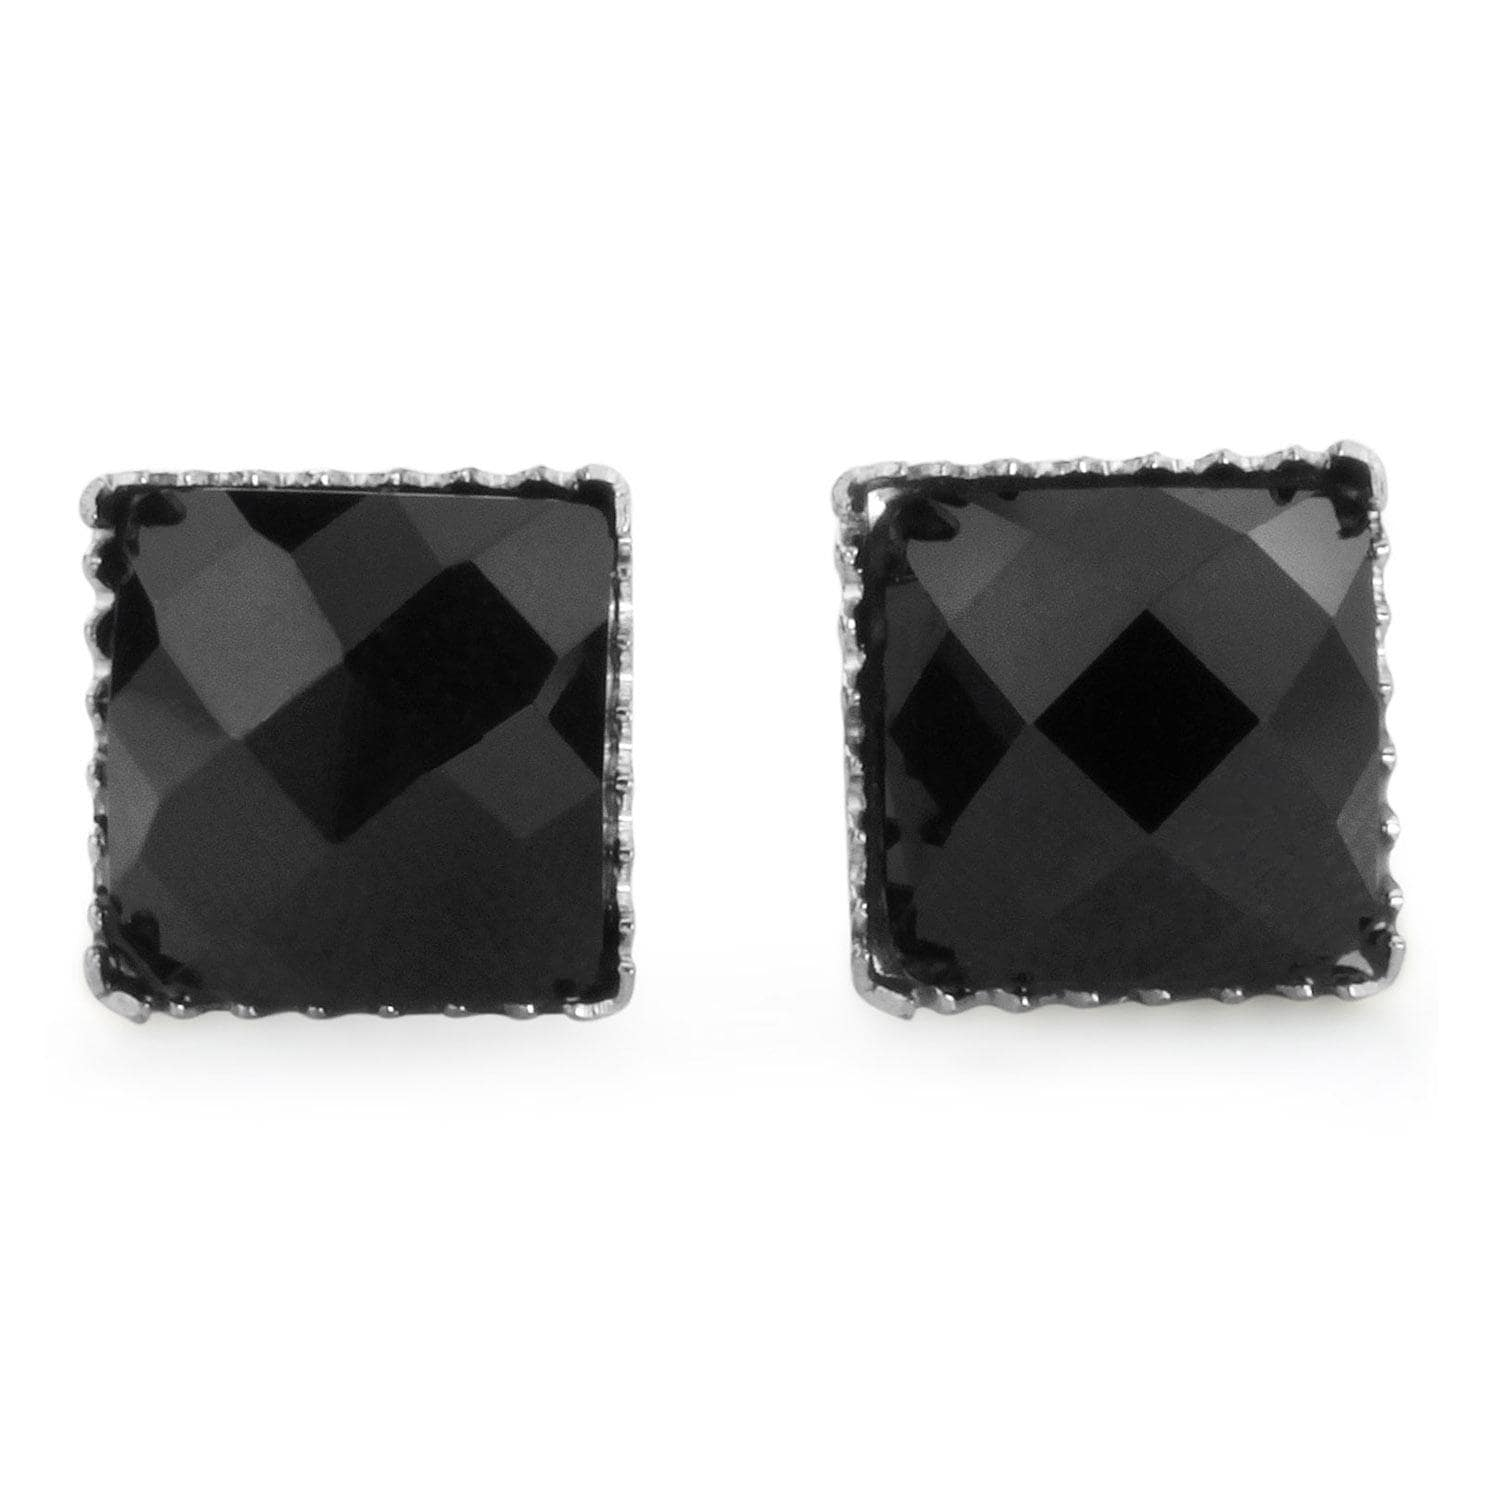 Pair of 316L Surgical Steel Faceted Square Black Onyx Gem Earrings - 7 mm